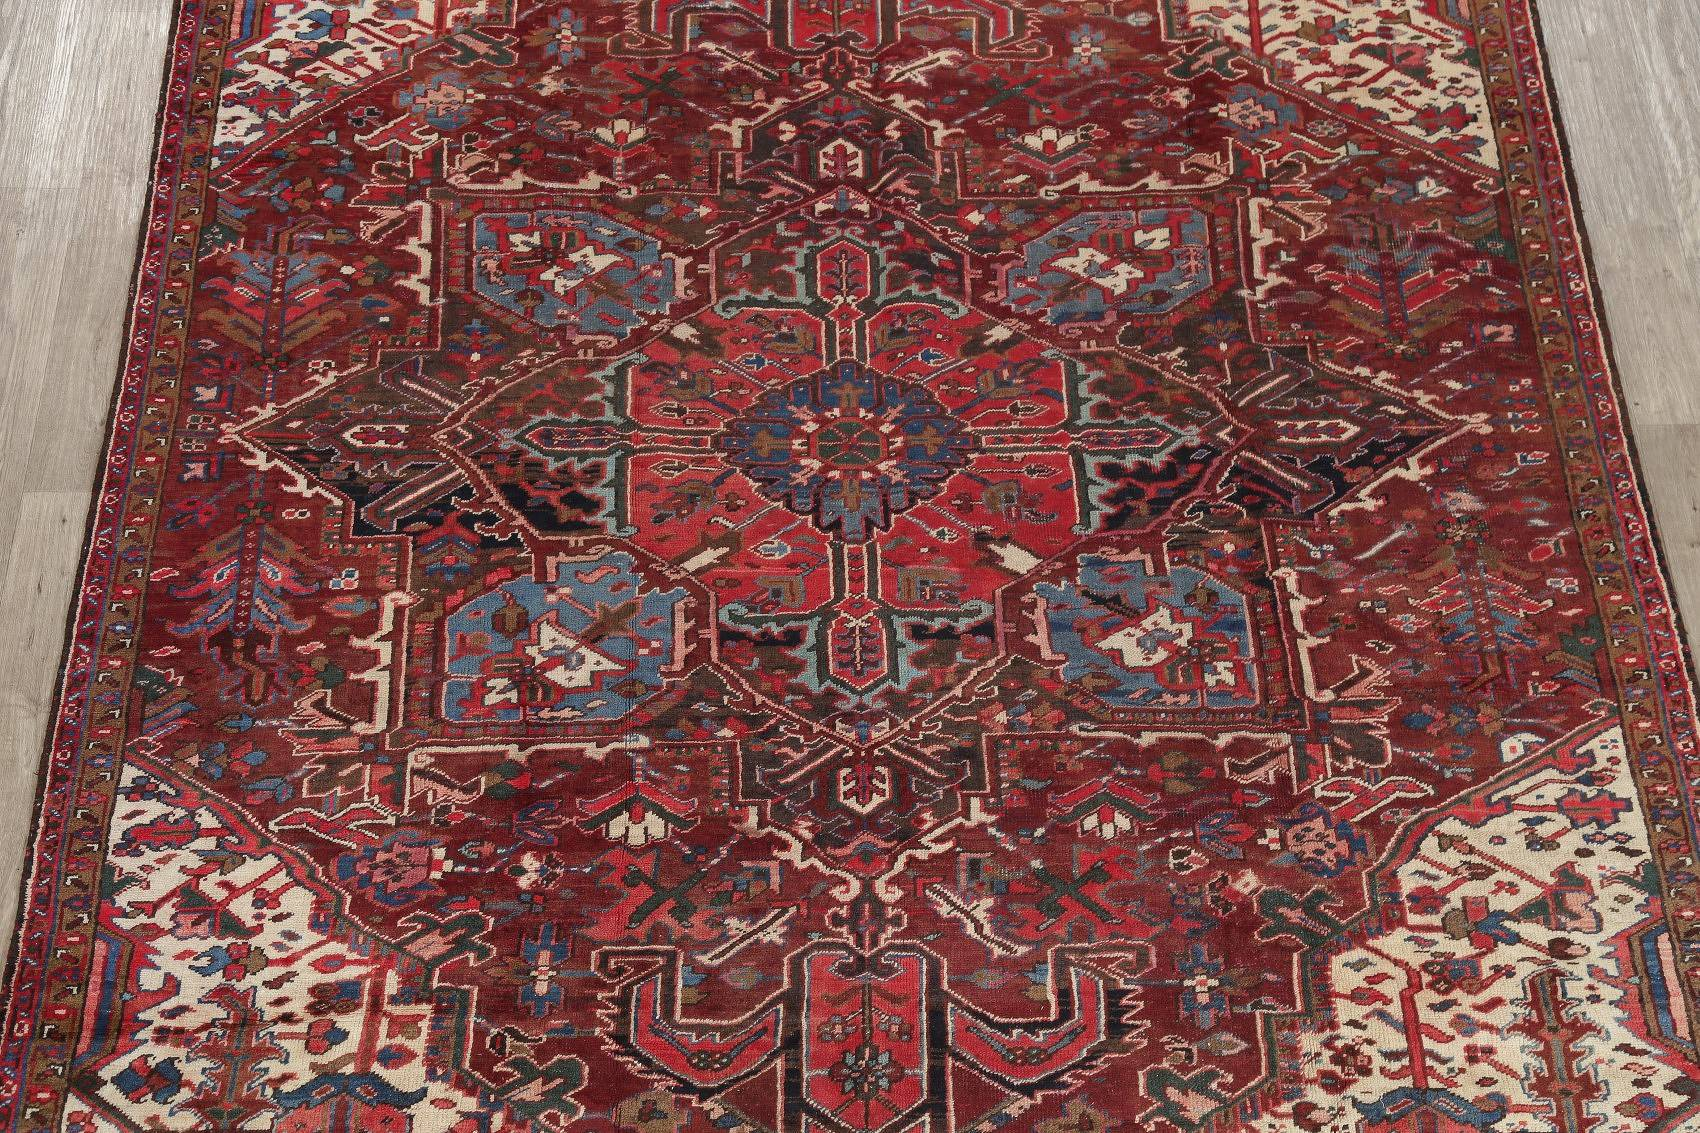 Antique Geometric Heriz Persian Hand-Knotted 8x12 Wool Area Rug